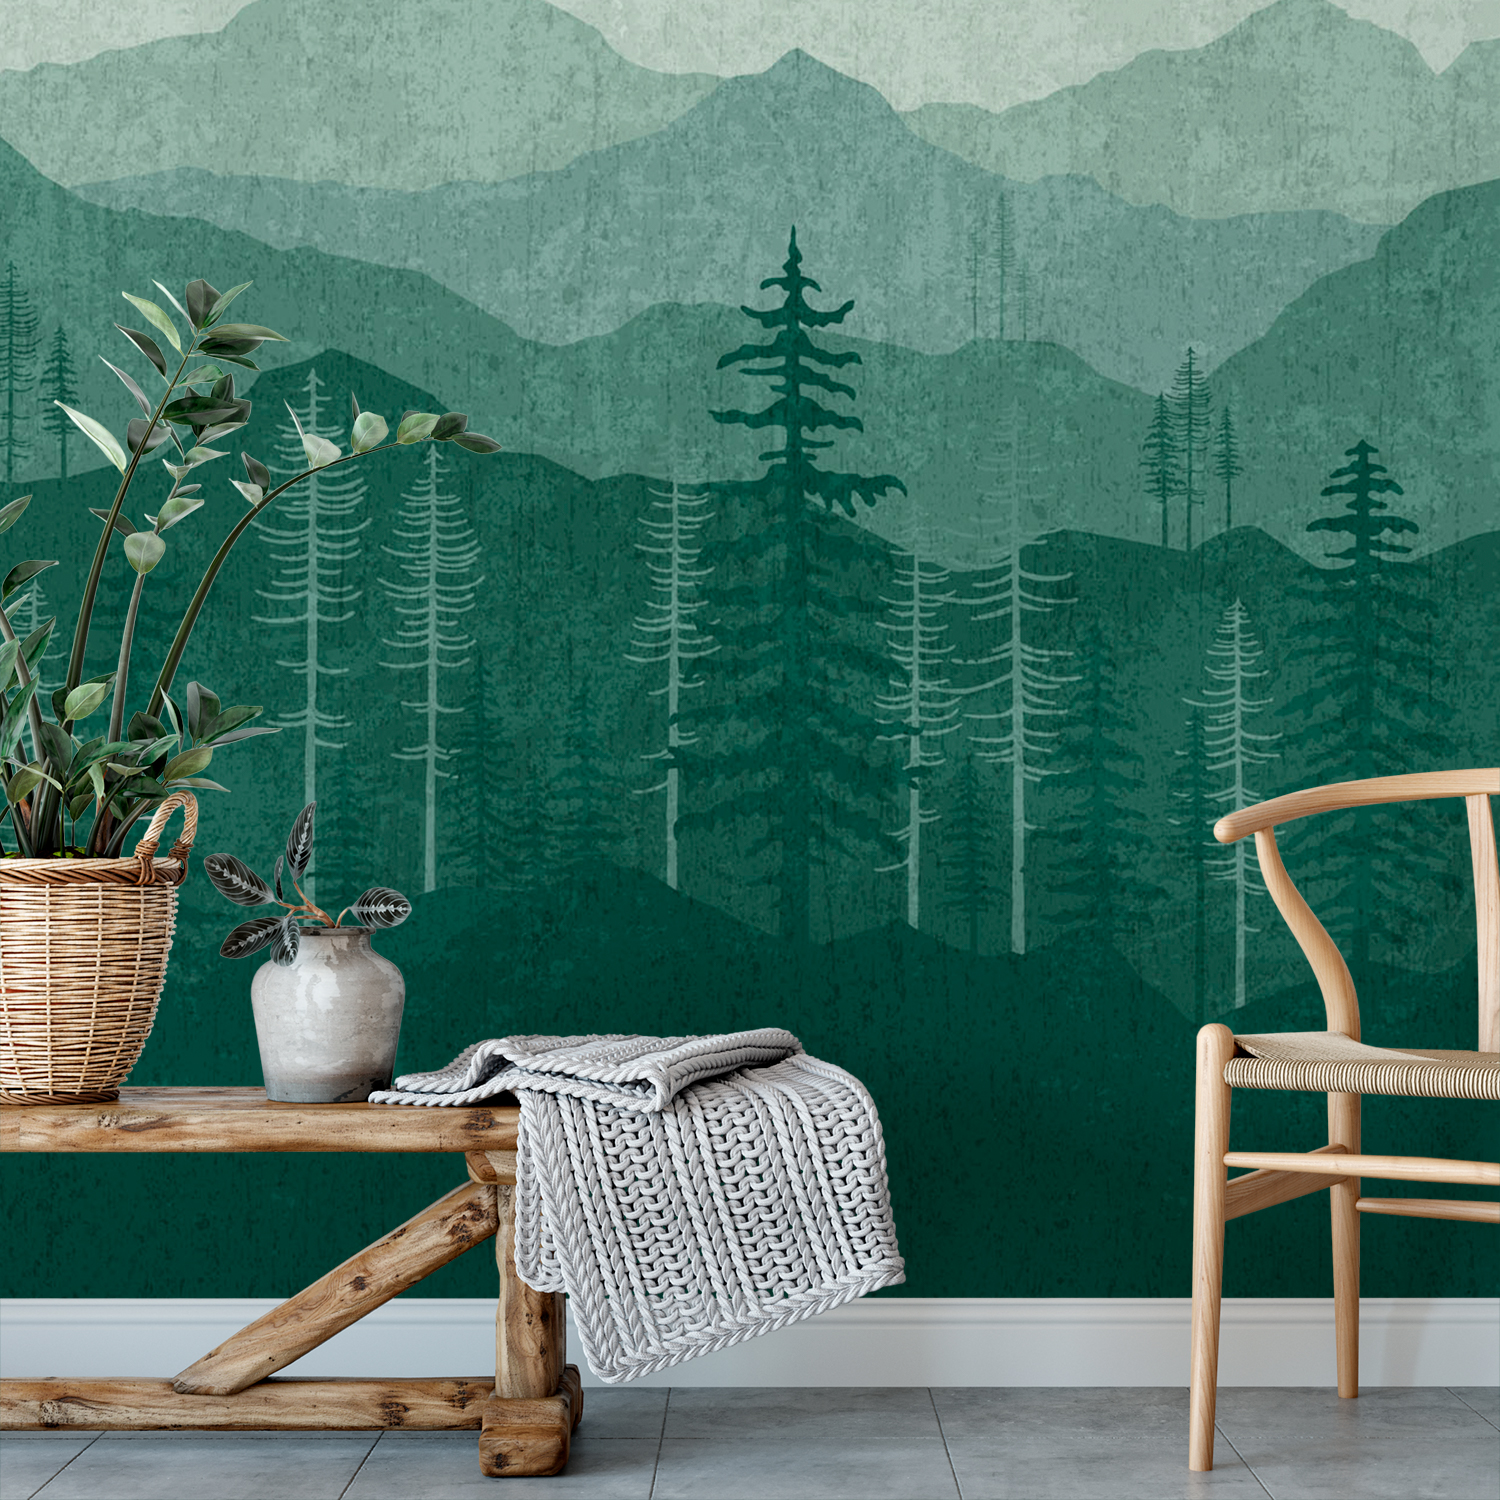 Teal Green Ombr Mountain Wall Mural Removable Wallpaper Mountain Removable Wallpaper Green 1500x1500 Download Hd Wallpaper Wallpapertip